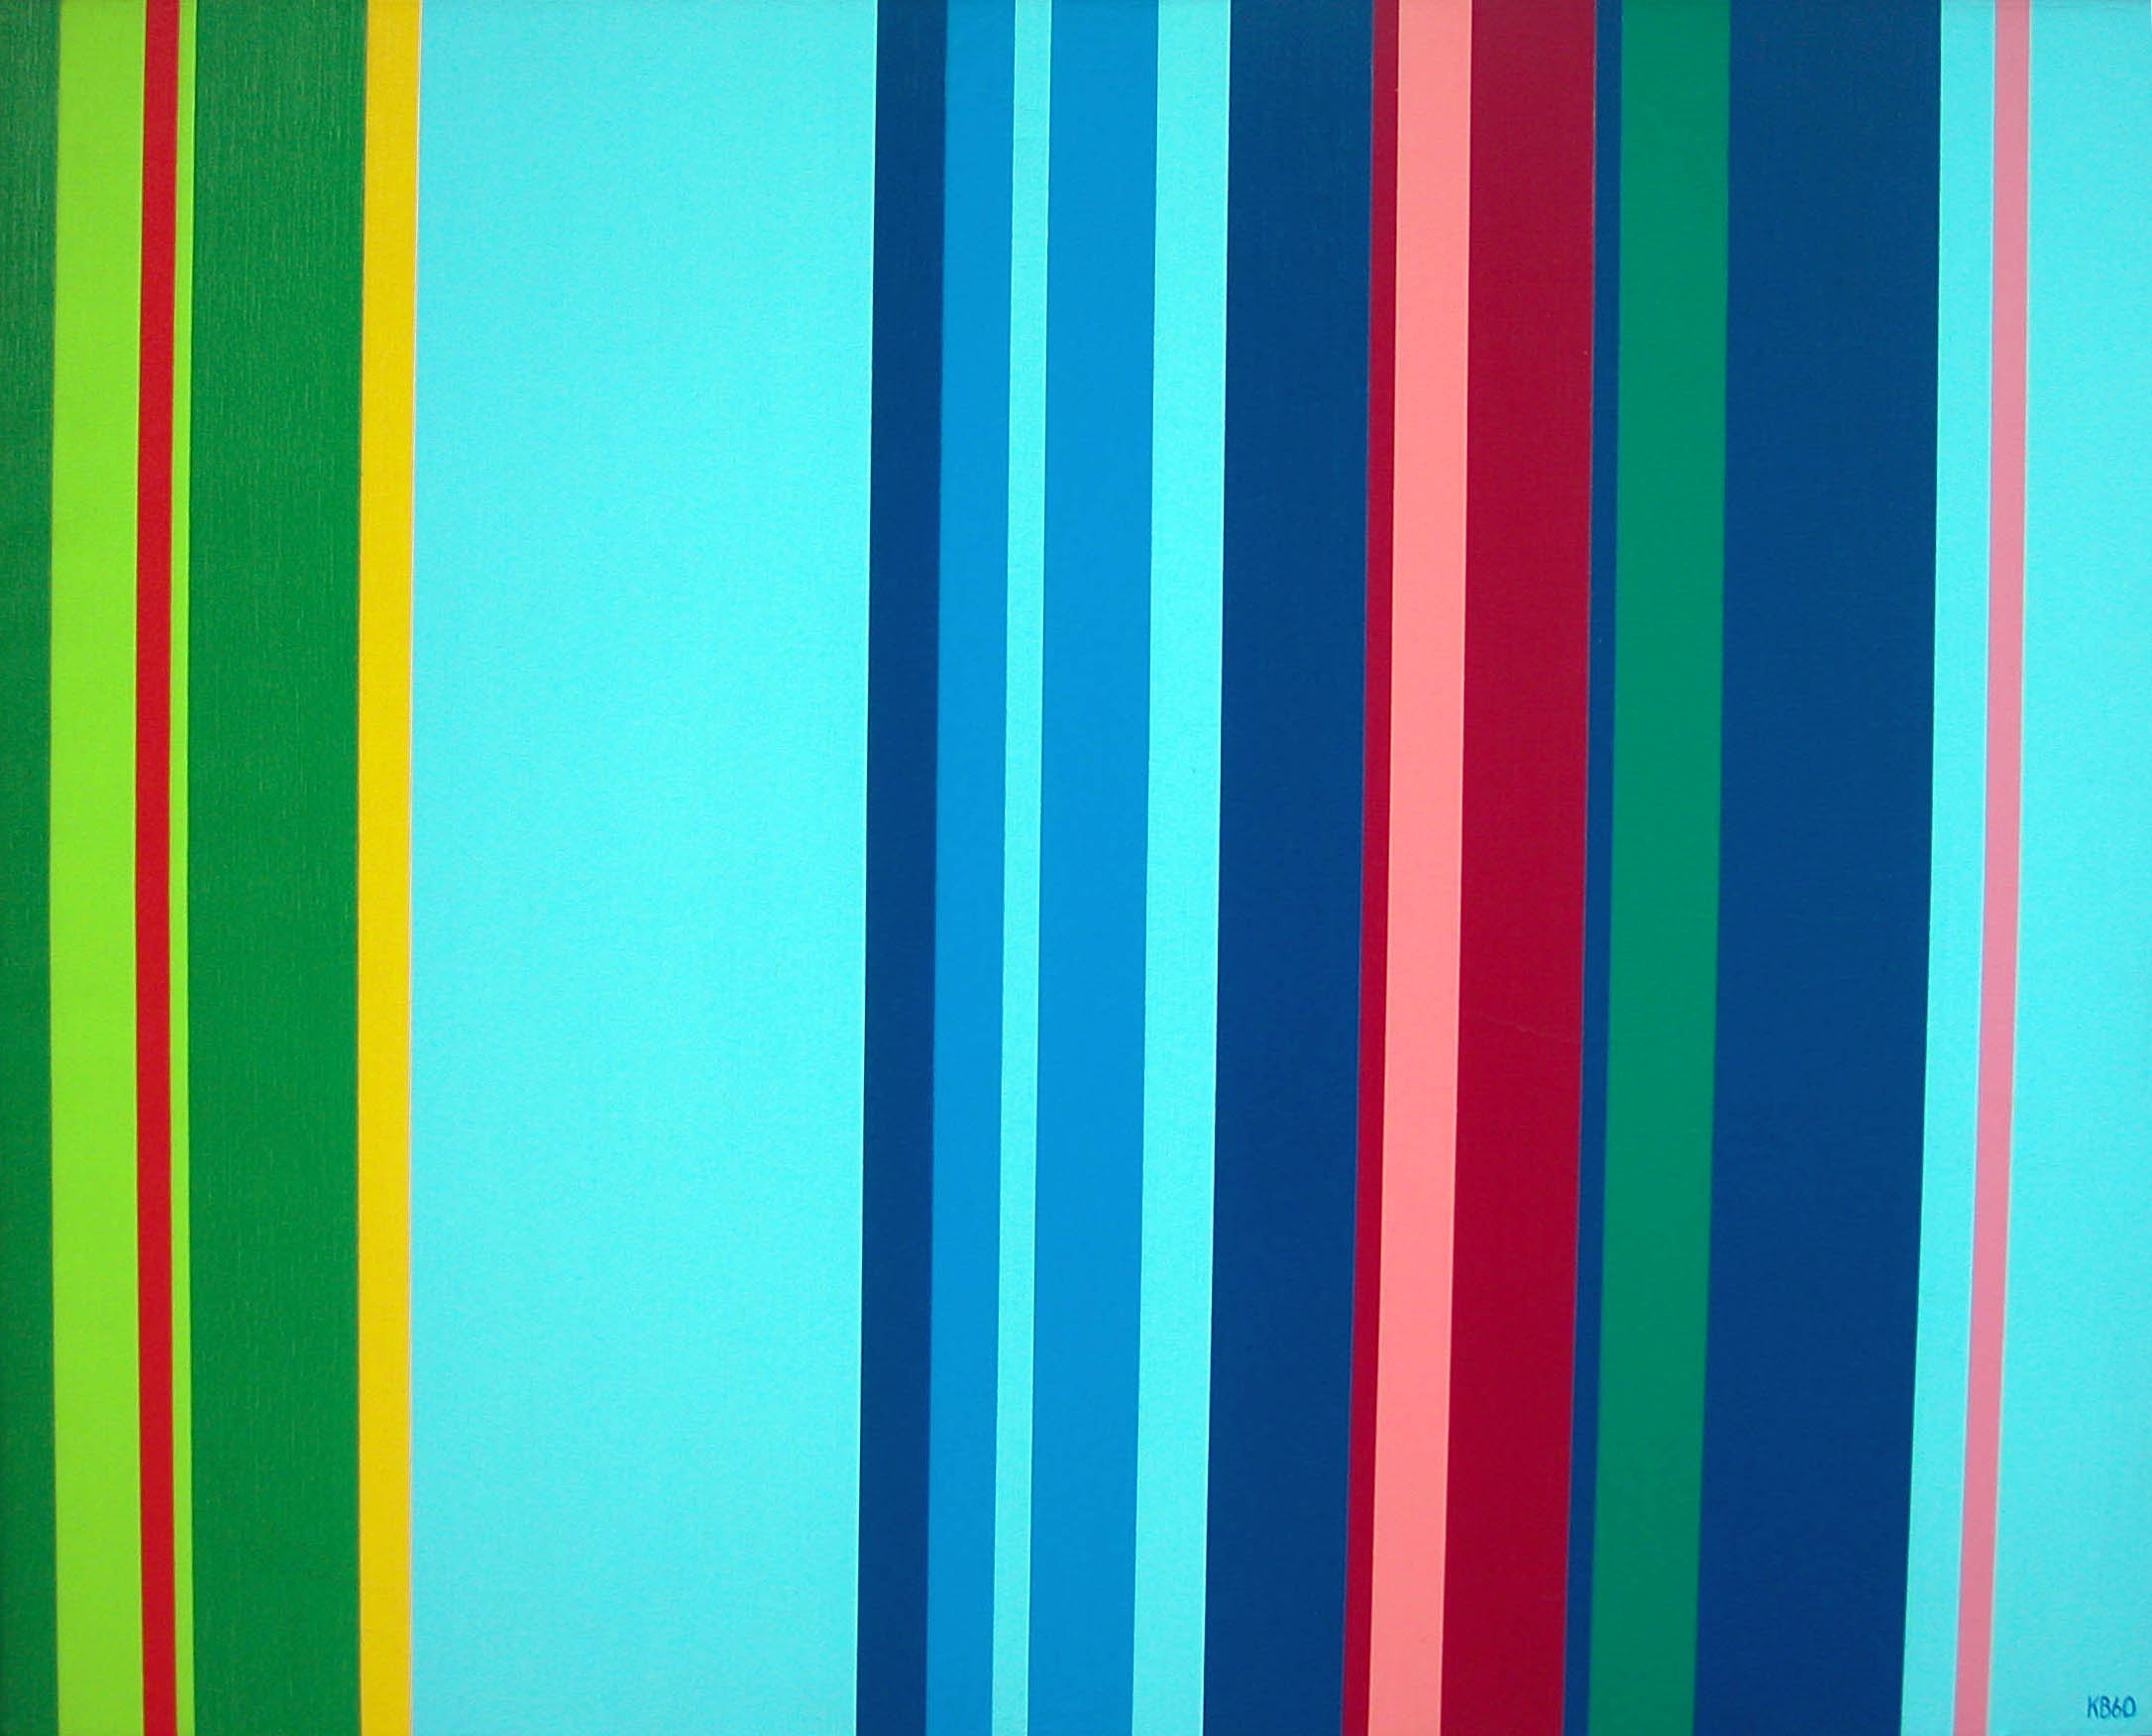 V.S. #5 , 1960  oil on canvas 34 x 42 inches; 86.4 x 106.7 centimeters